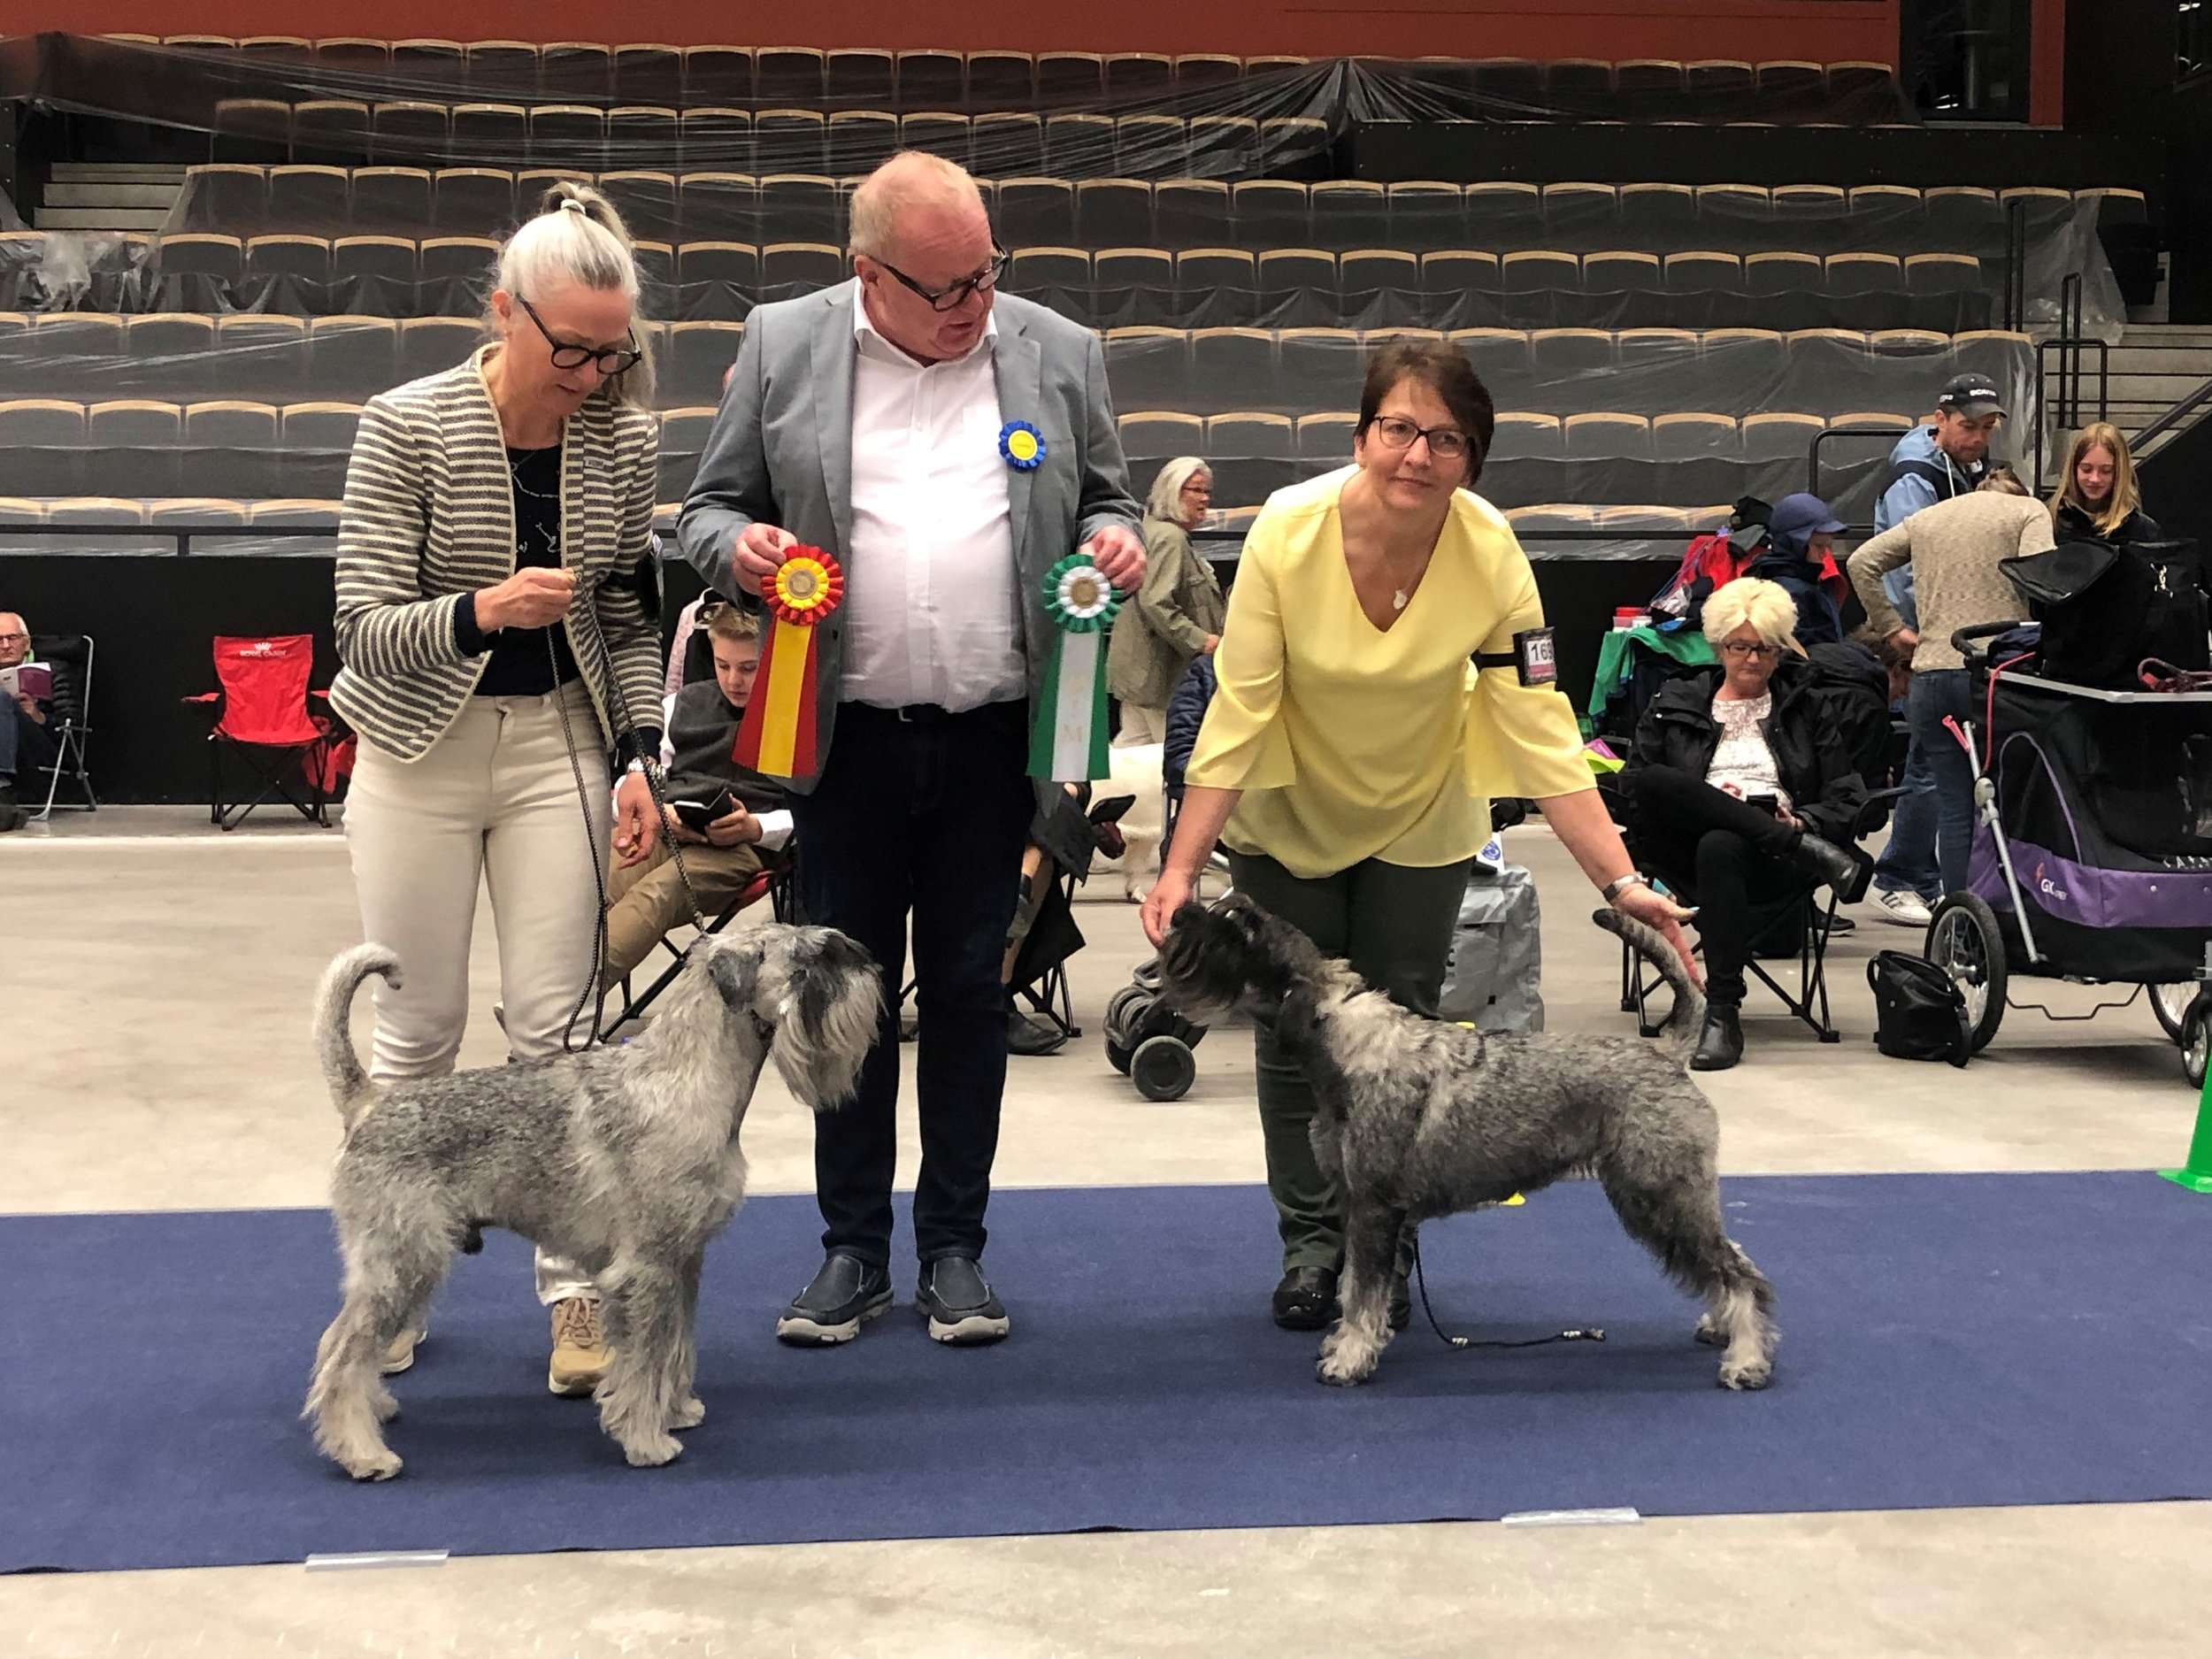 VDs Neappolitan Dynamite BOB and Mabel Alarm Beskyd BOS with judge Johnny Andersson